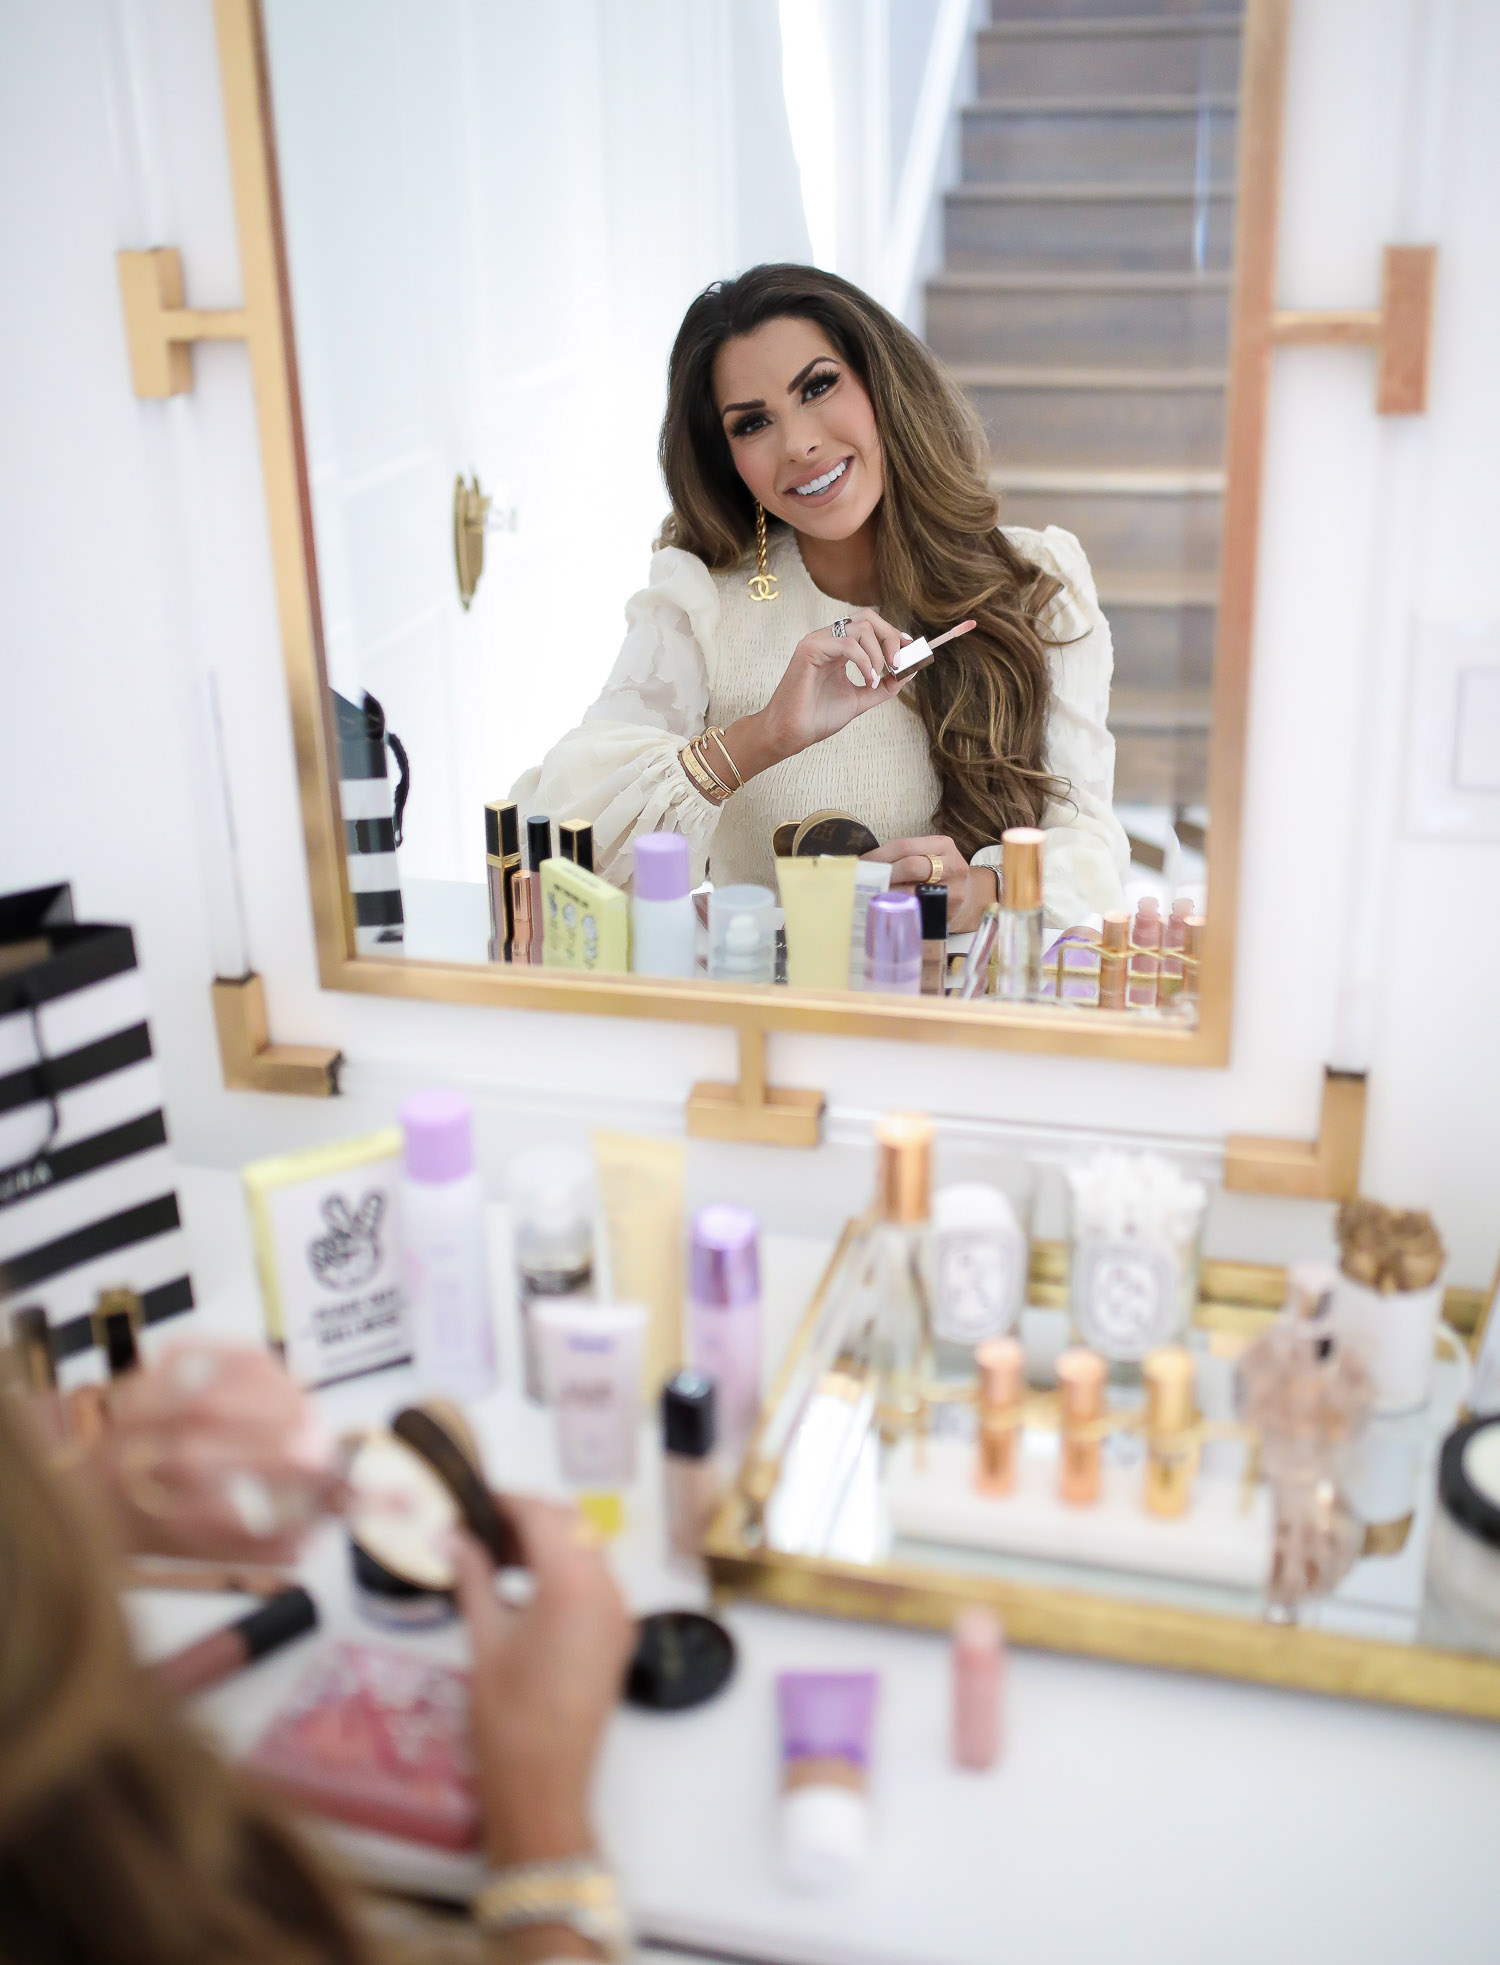 Sephora Haul spring 2020, beauty bloggers, Tatcha Liquid Silk Canvas review, lawless makeup review, emily gemma | Sephora Favorites by popular US beauty blog, The Sweetest Thing: image of a woman applying lipgloss in her vanity mirror.